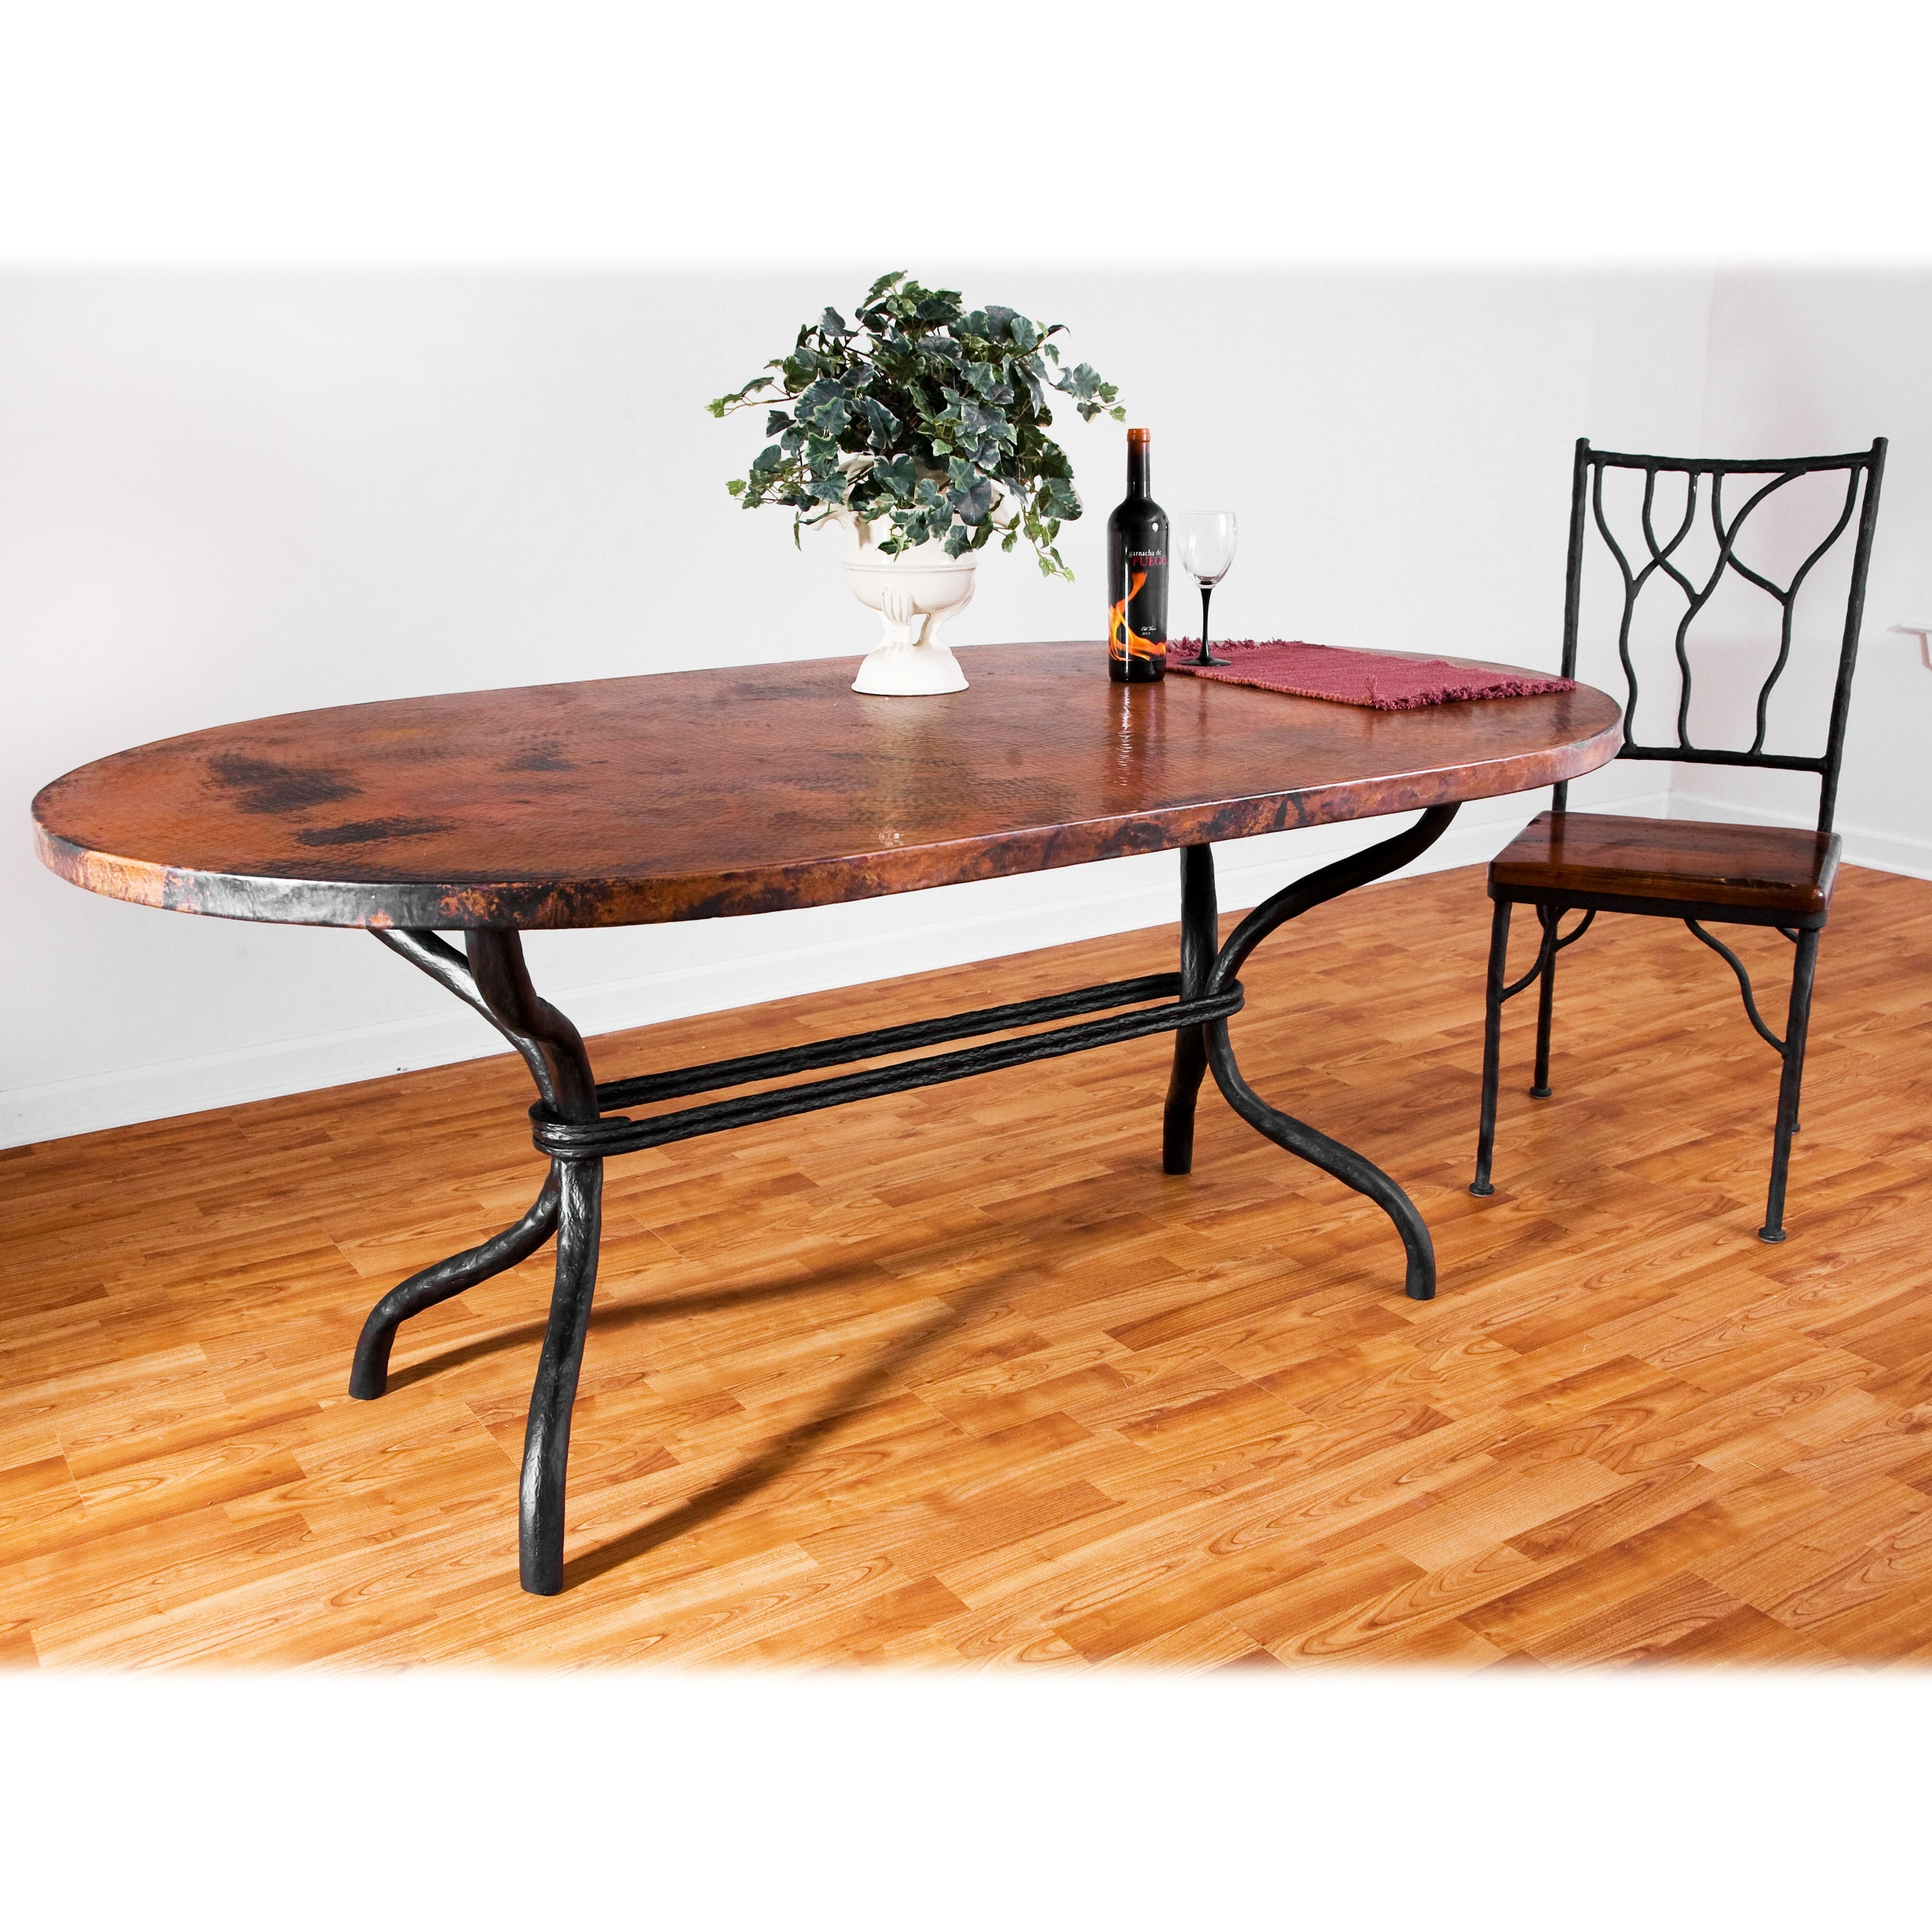 Contemporary Wrought Iron Woodland Dining Table | 42in x 72in ...